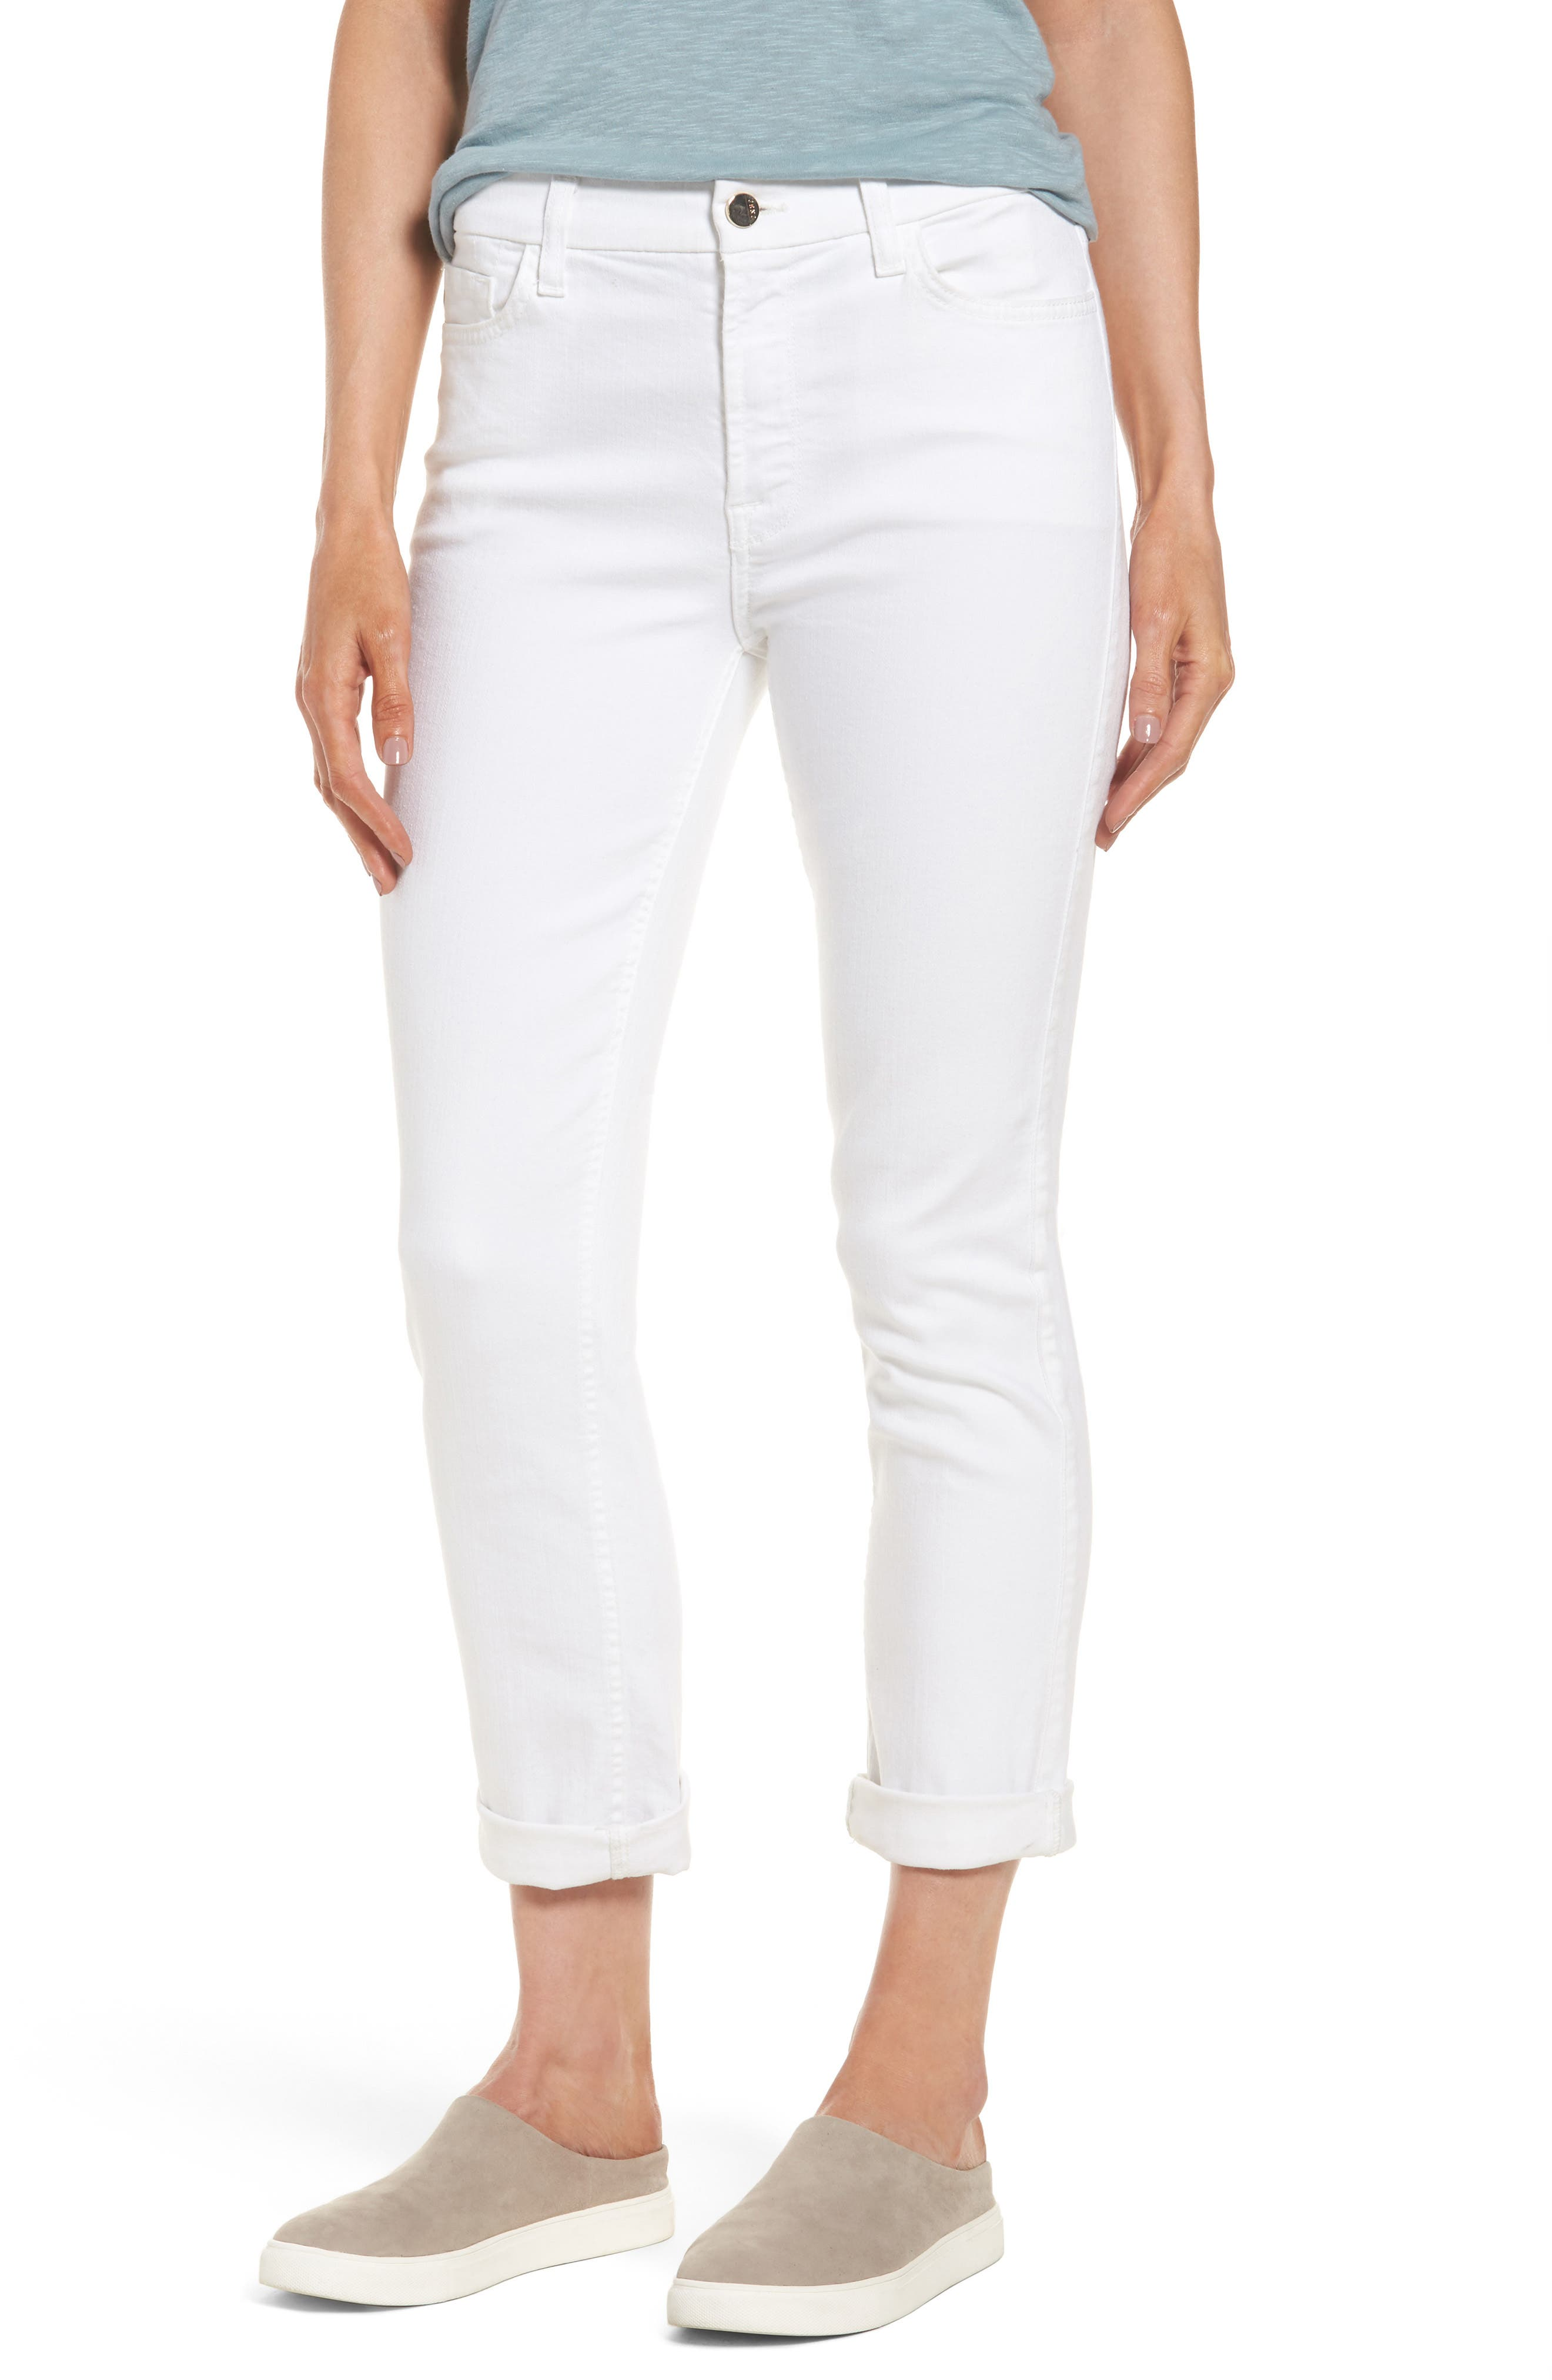 JEN7 BY 7 FOR ALL MANKIND Stretch Straight Leg Crop Jeans, Main, color, WHITE DENIM